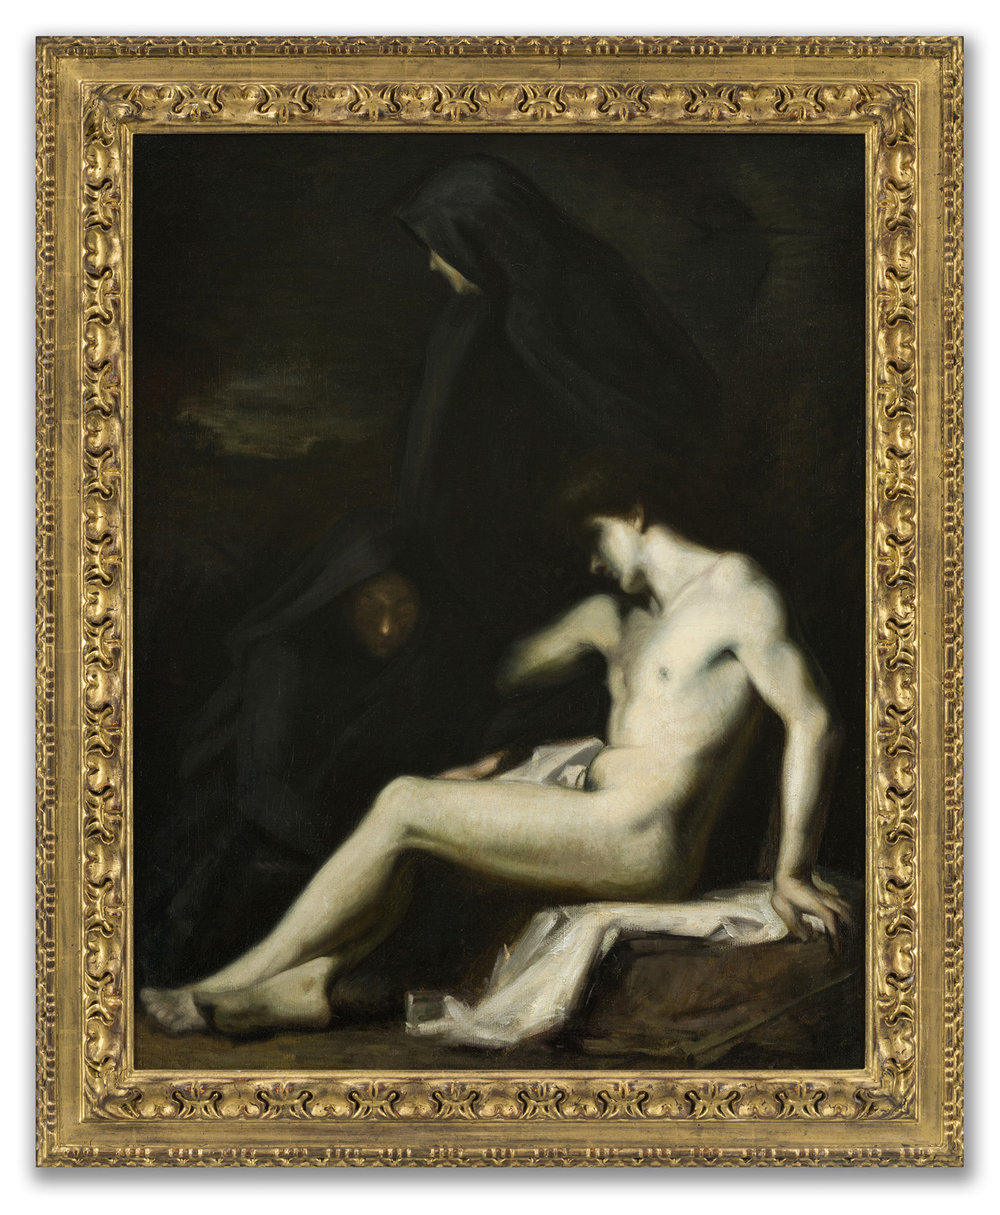 (Attributed to) Jean-Jacques Henner, (French 1829-1905), St Sebastian, c.1888.